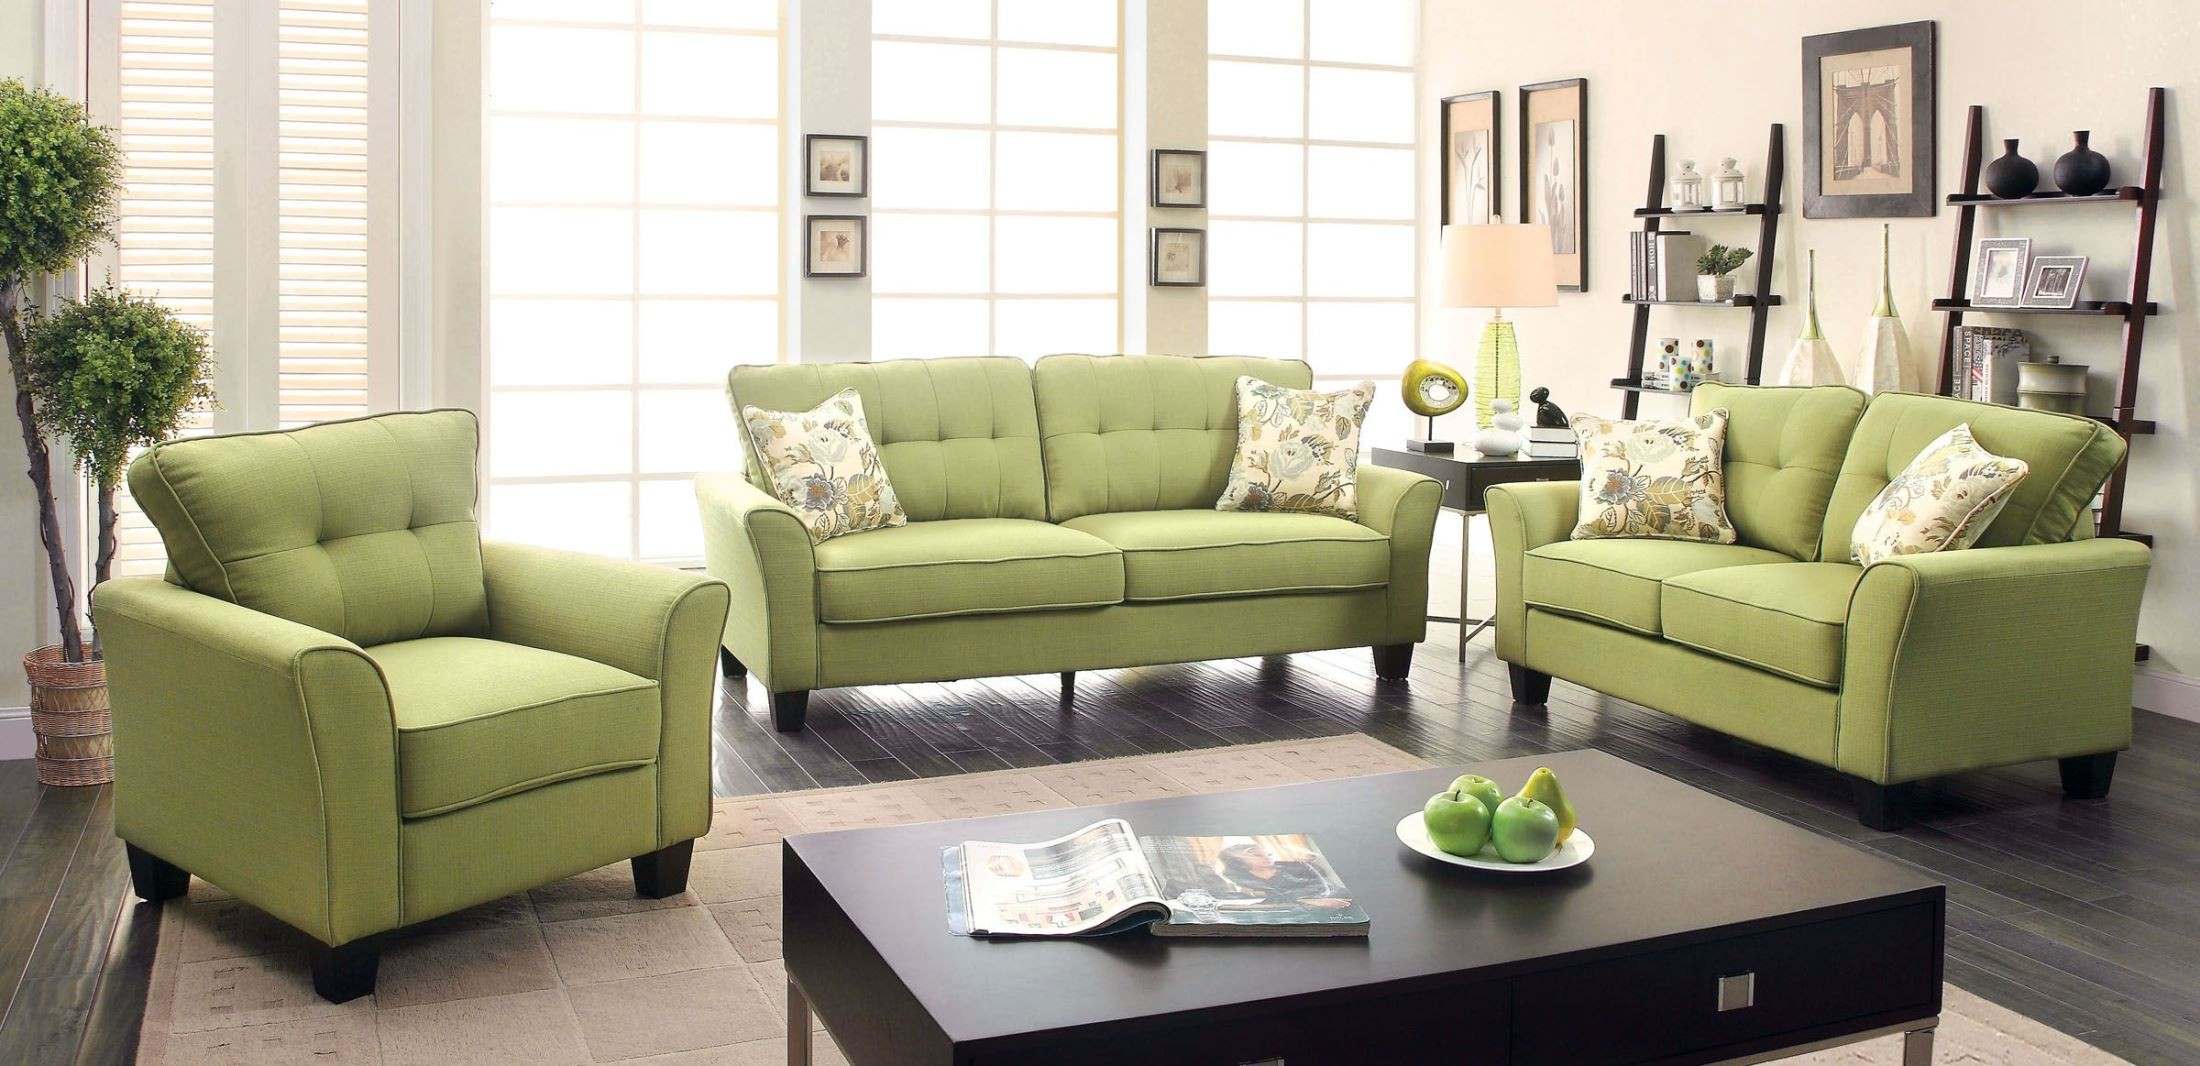 Claire green fabric sofa from furniture of america for Chair 7 alyeska